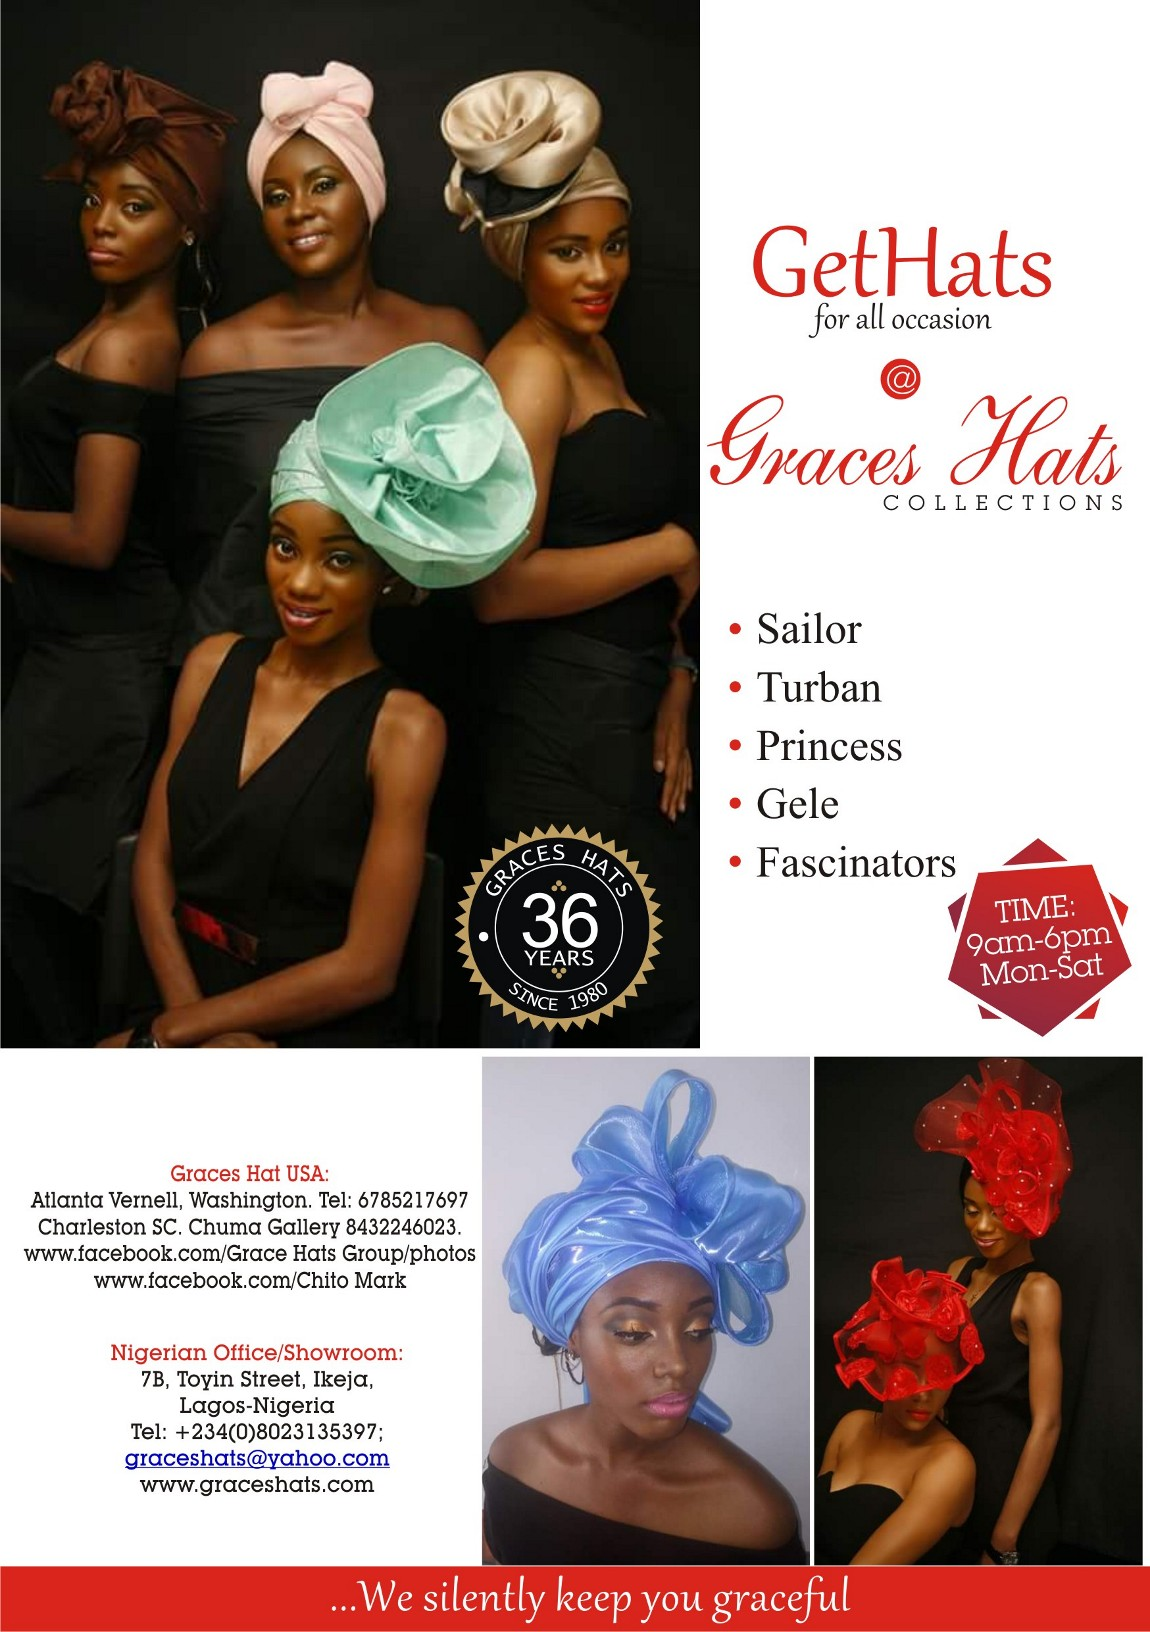 GRACES hATS aDVERT.